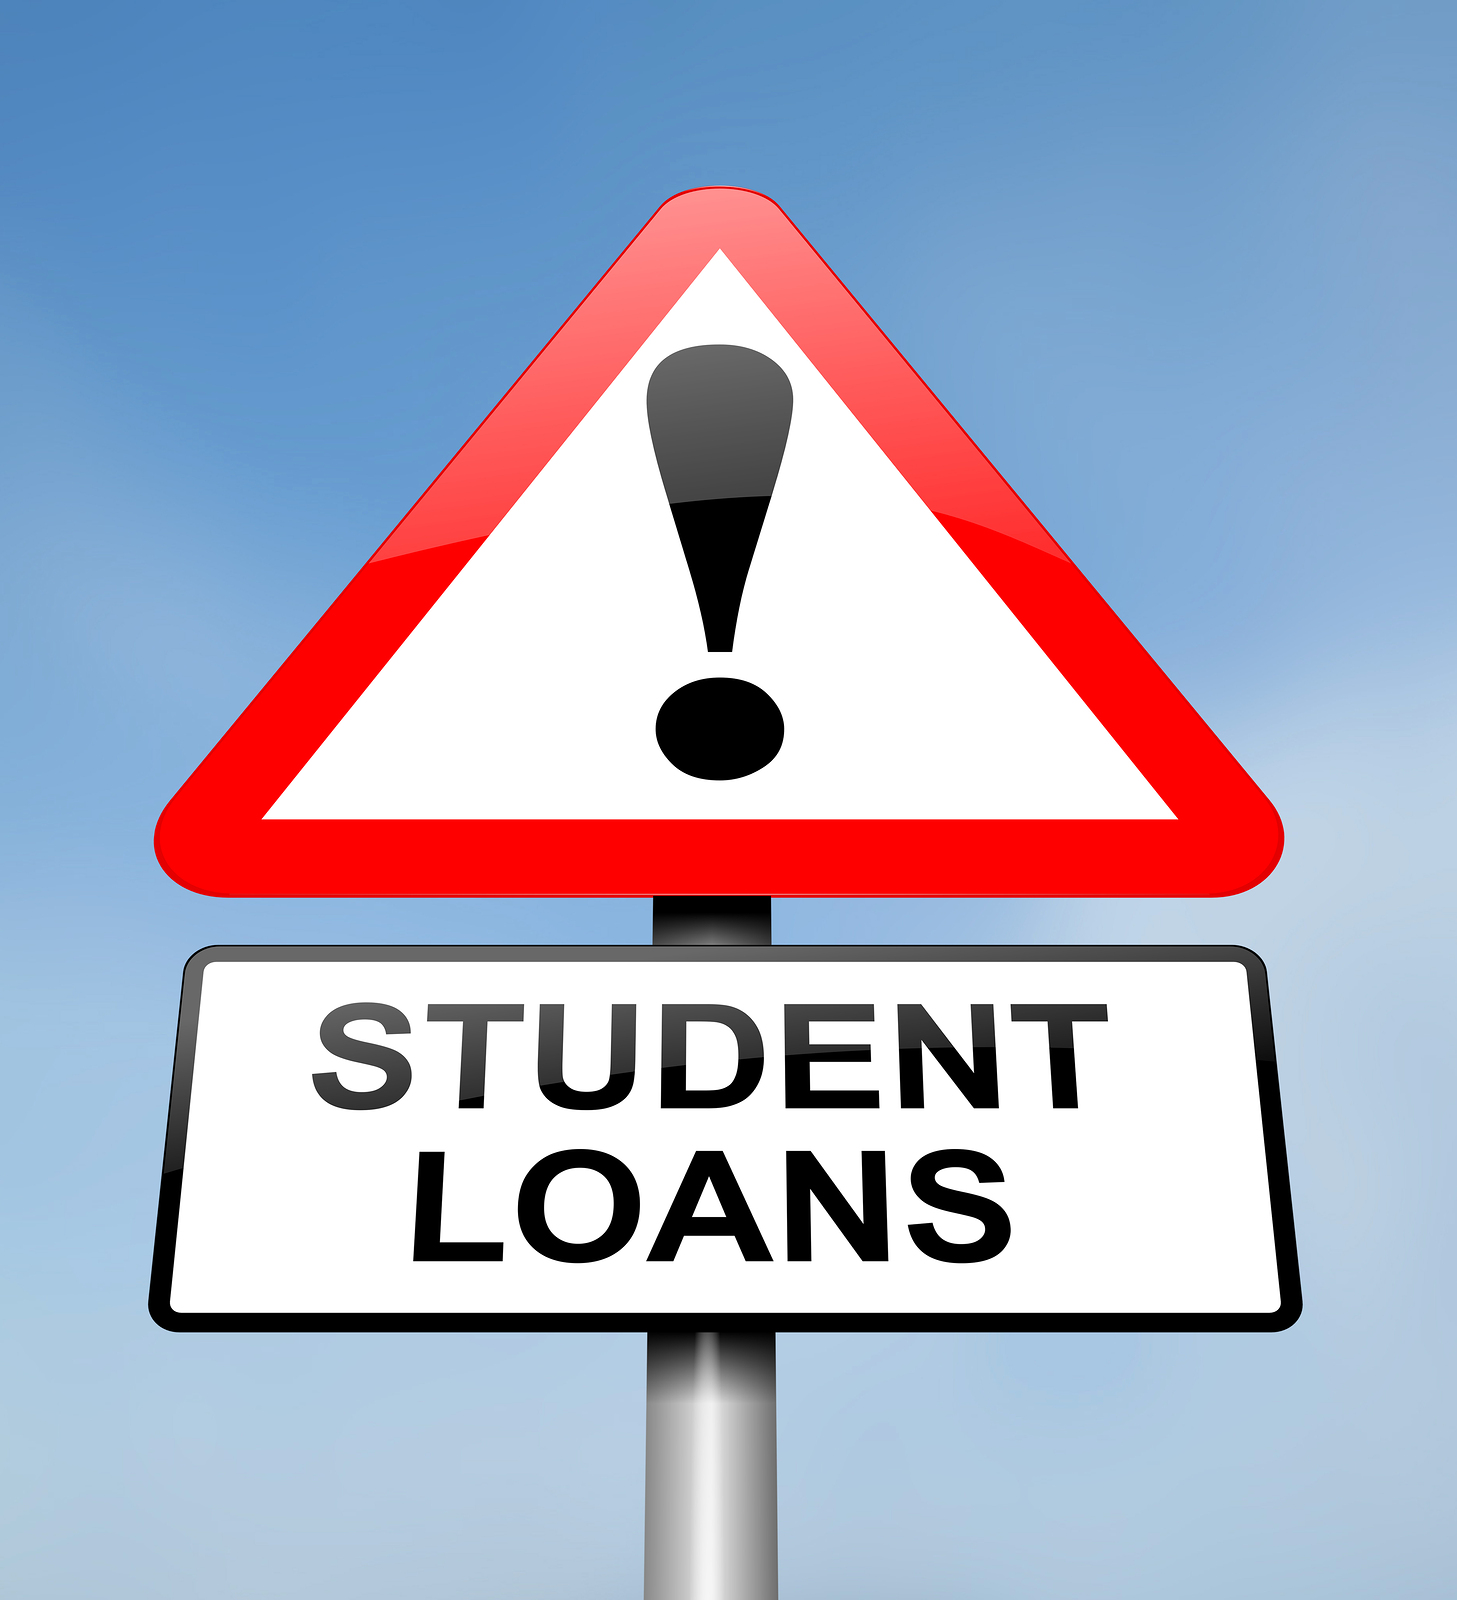 a guide to stay on top of your student loans | calcite credit union